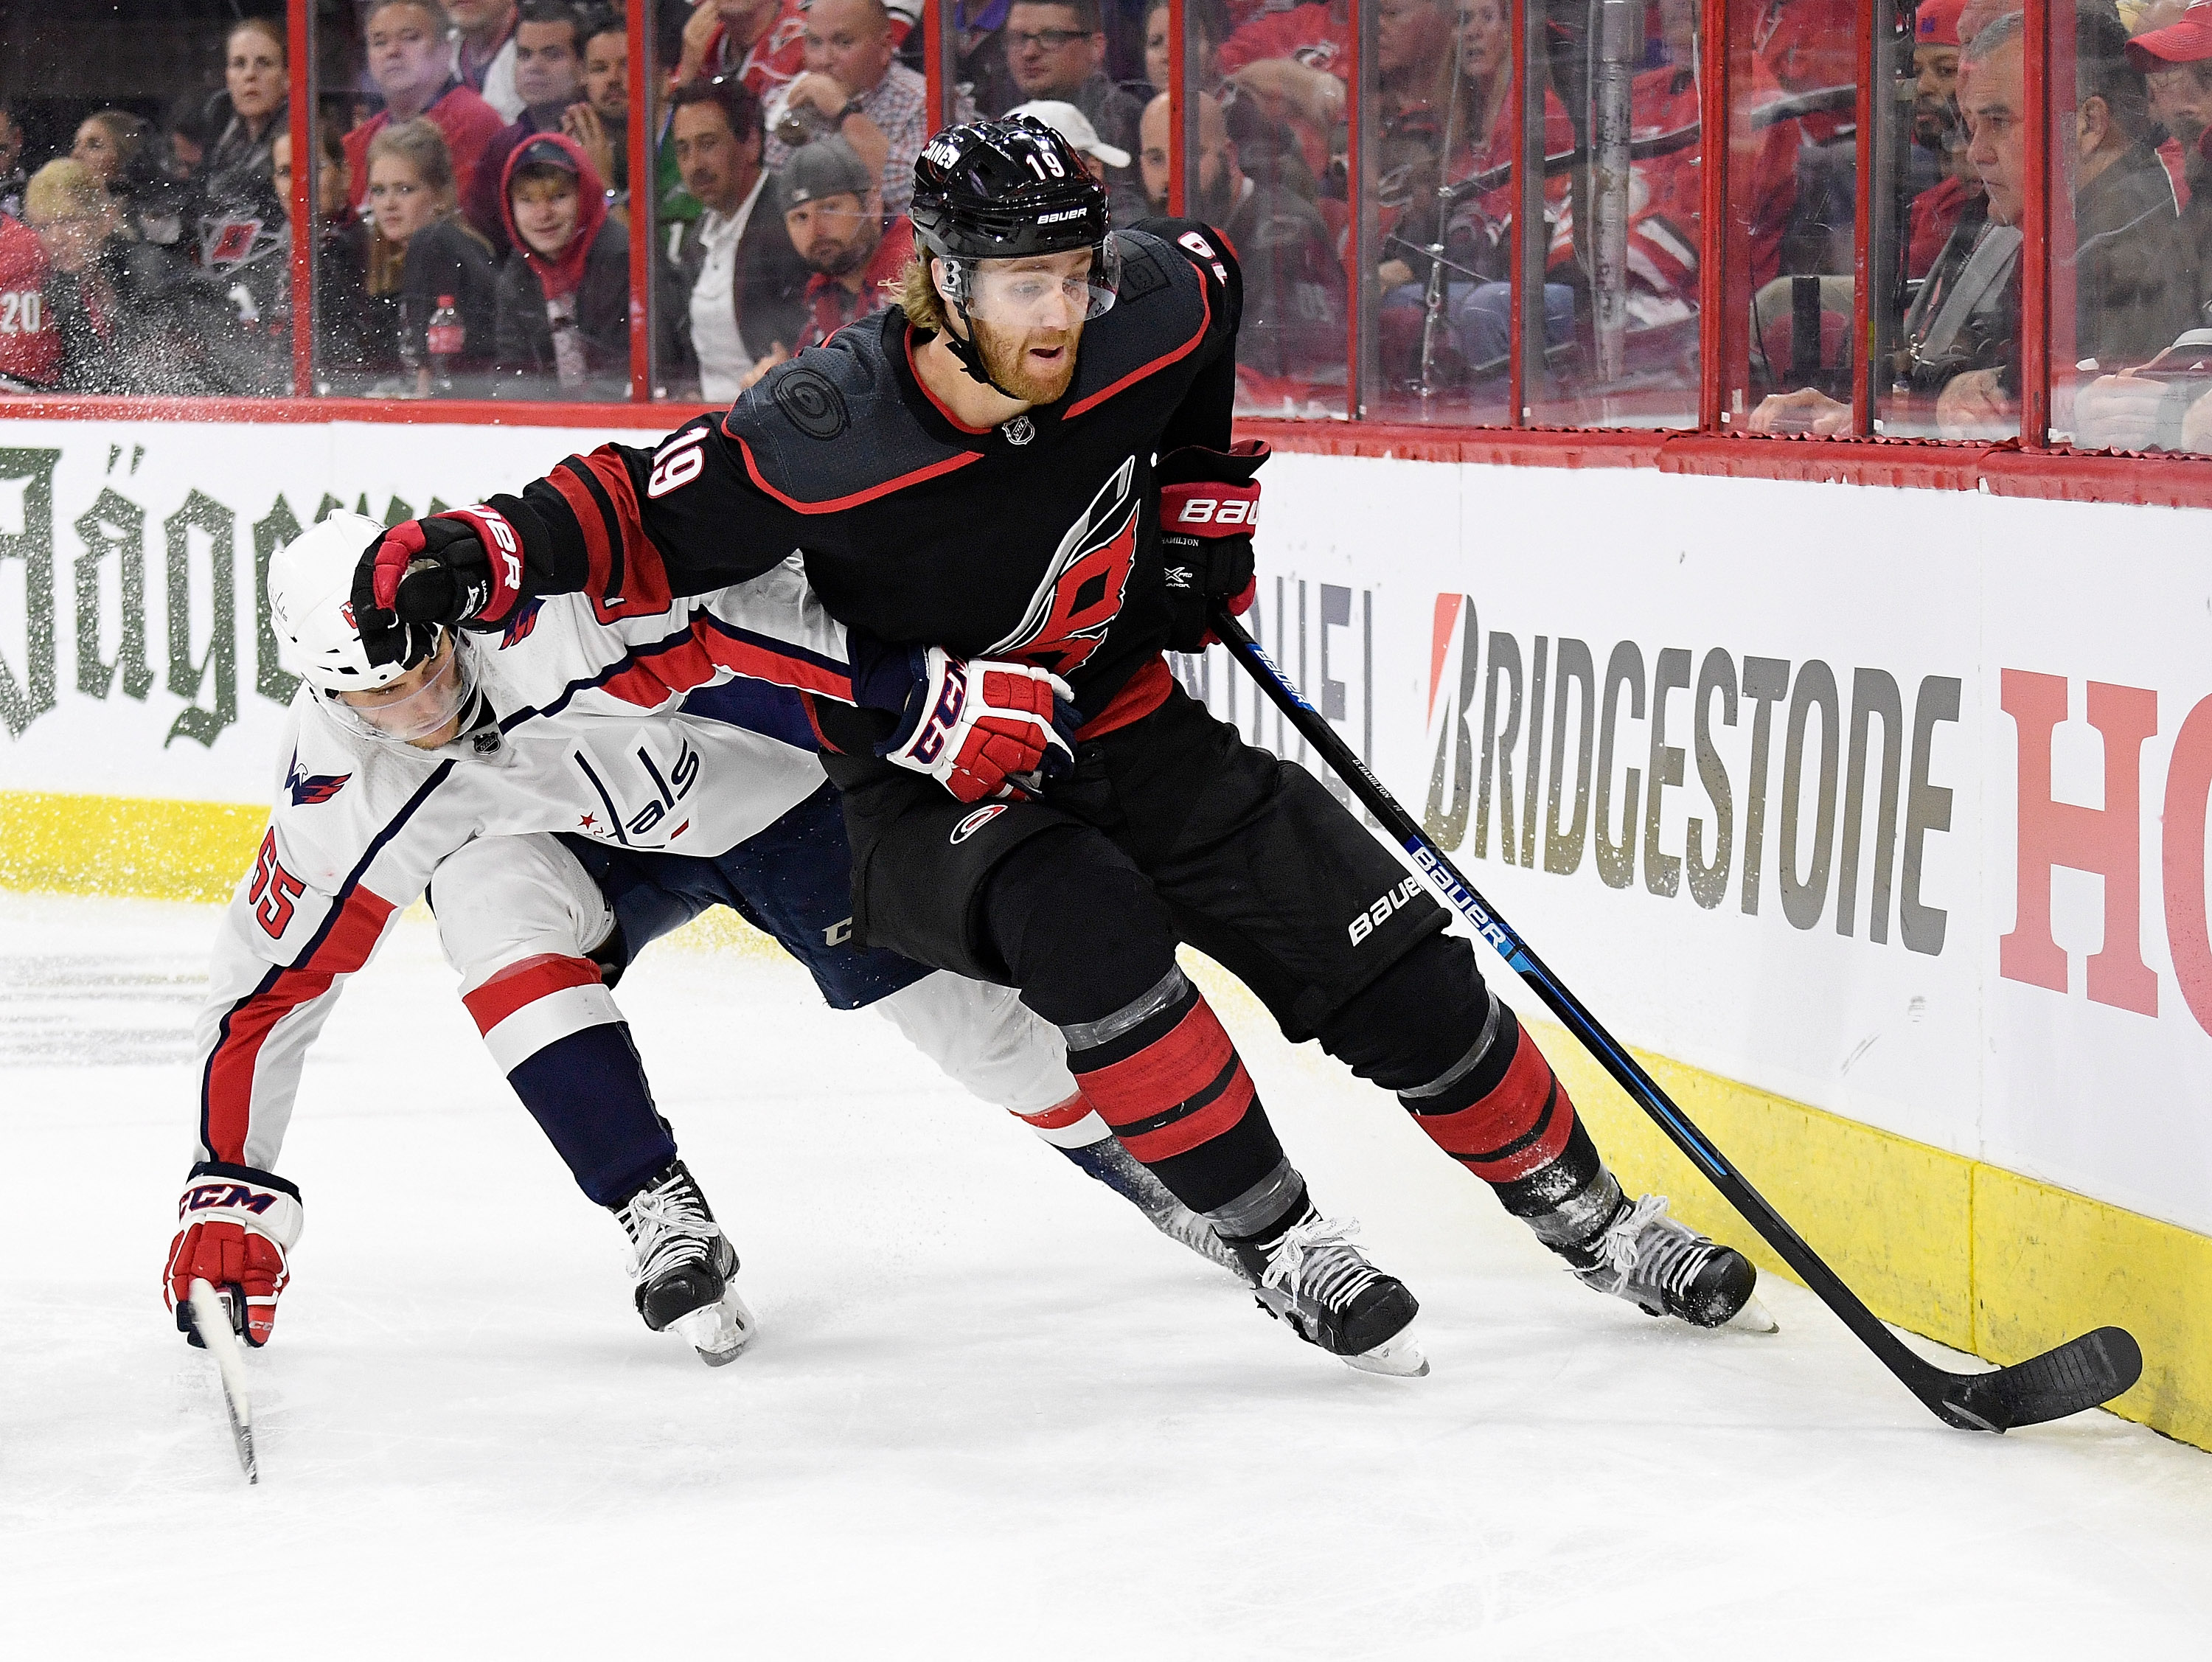 Dougie Hamilton still claims to not know why Bruins traded him